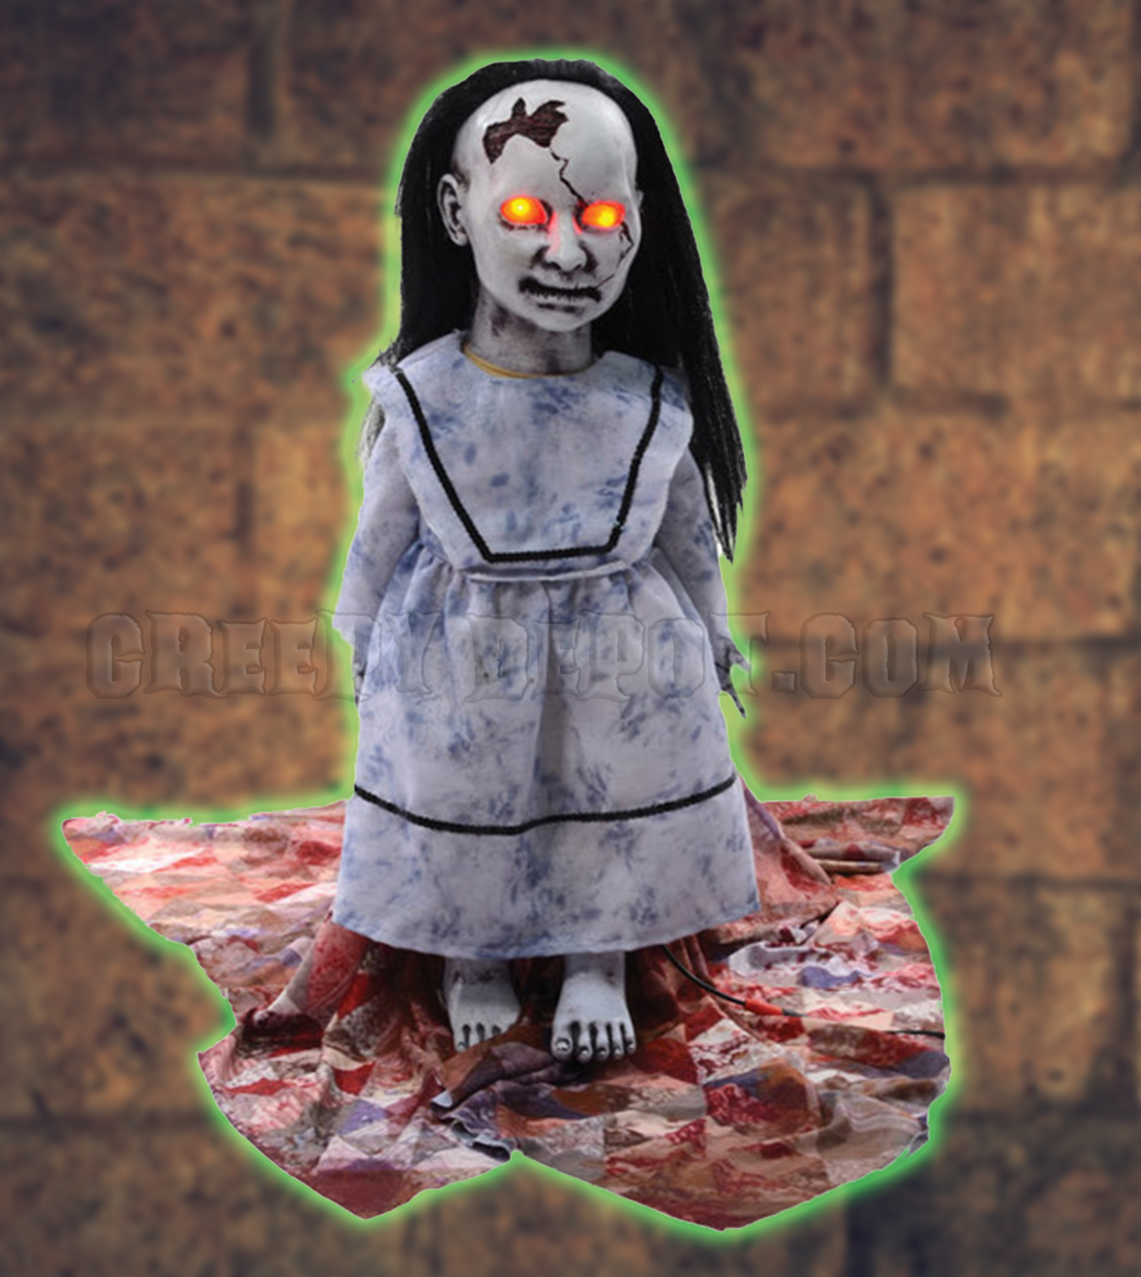 Animated Haunted Graveyard Baby Doll Prop